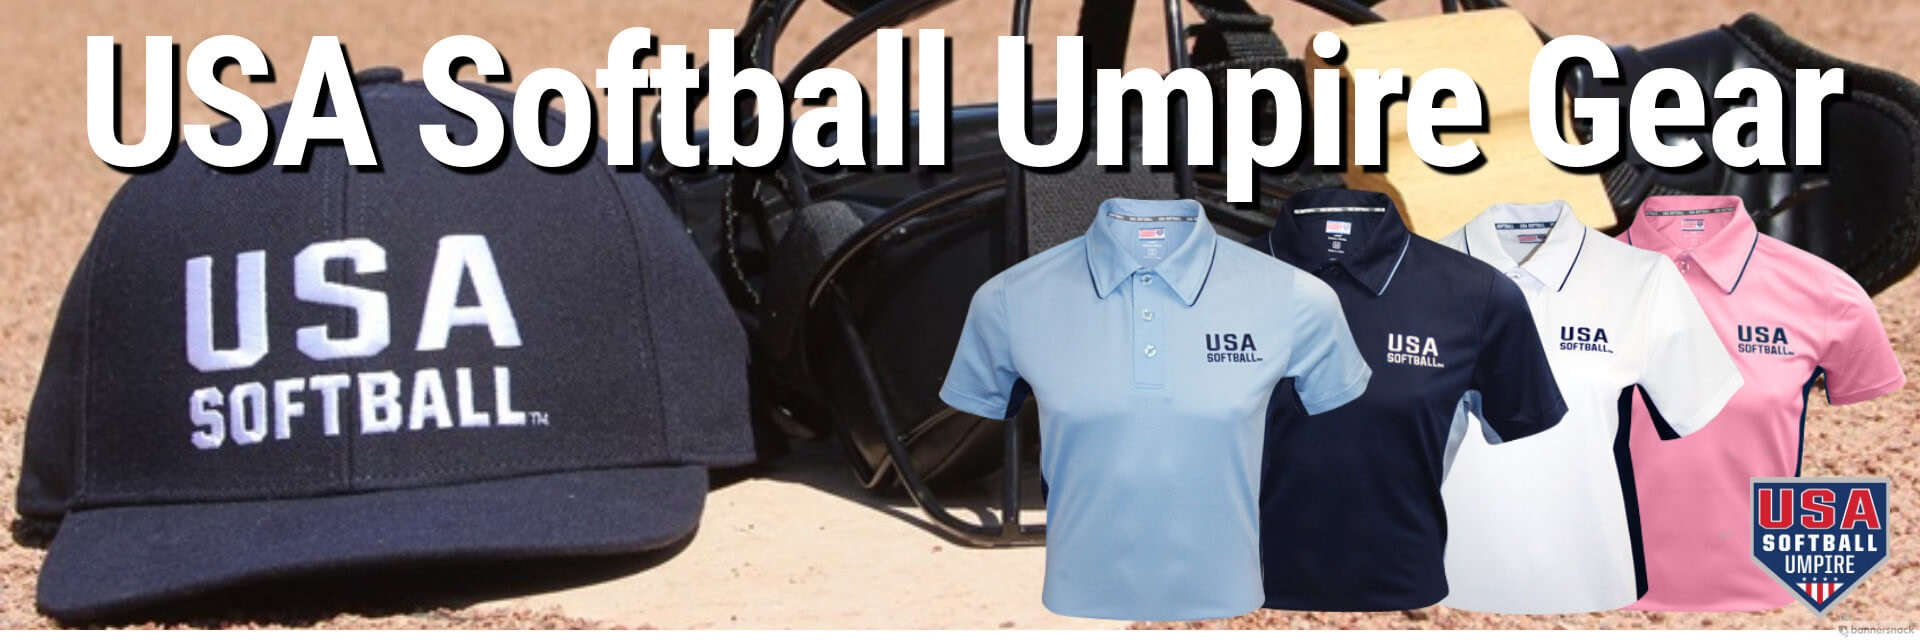 USA Softball Umpire Gear